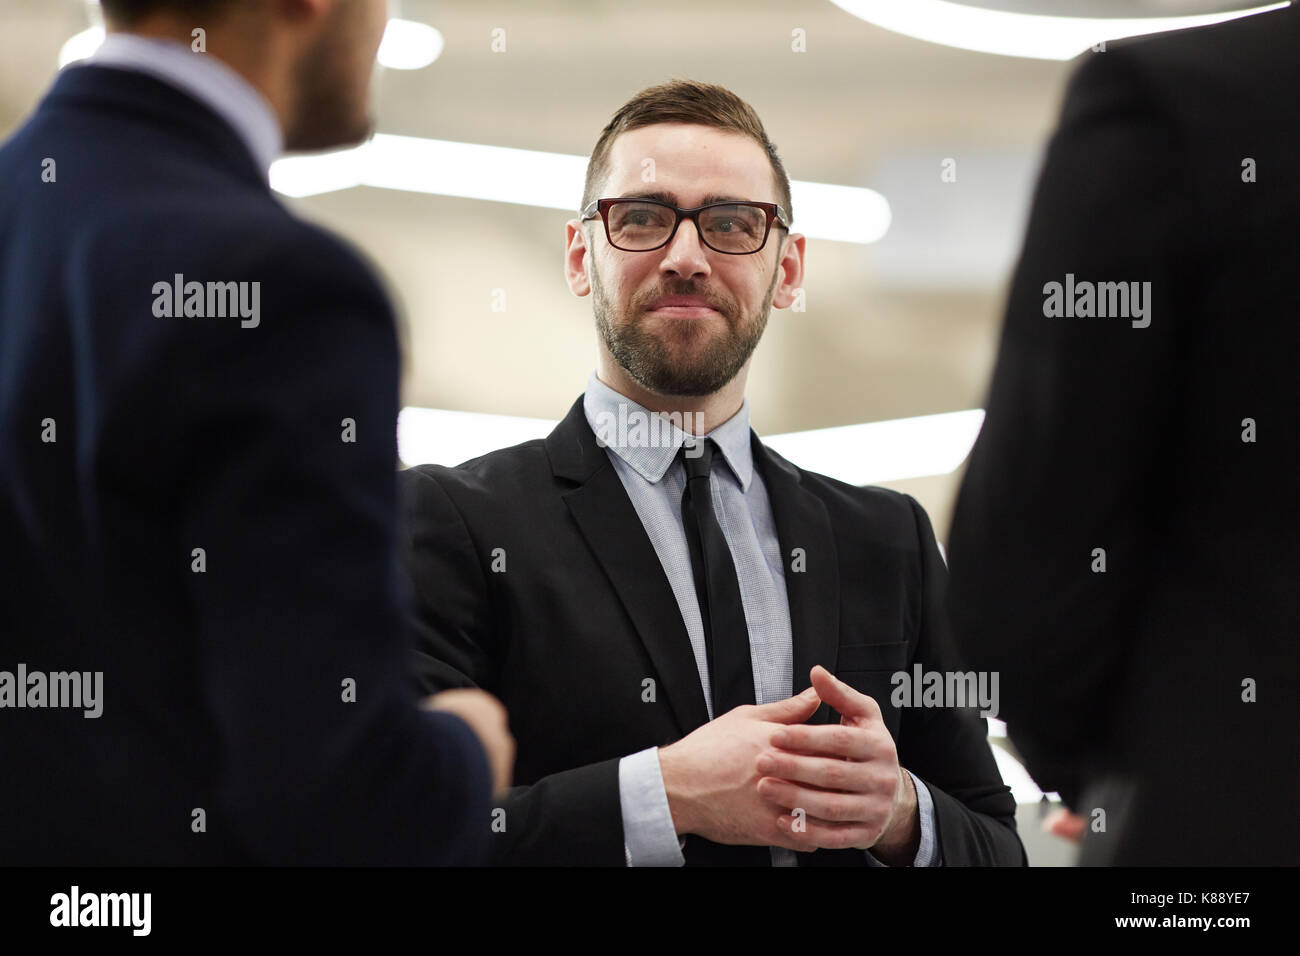 Confident financier in formalwear listening to one of colleagues at meeting - Stock Image